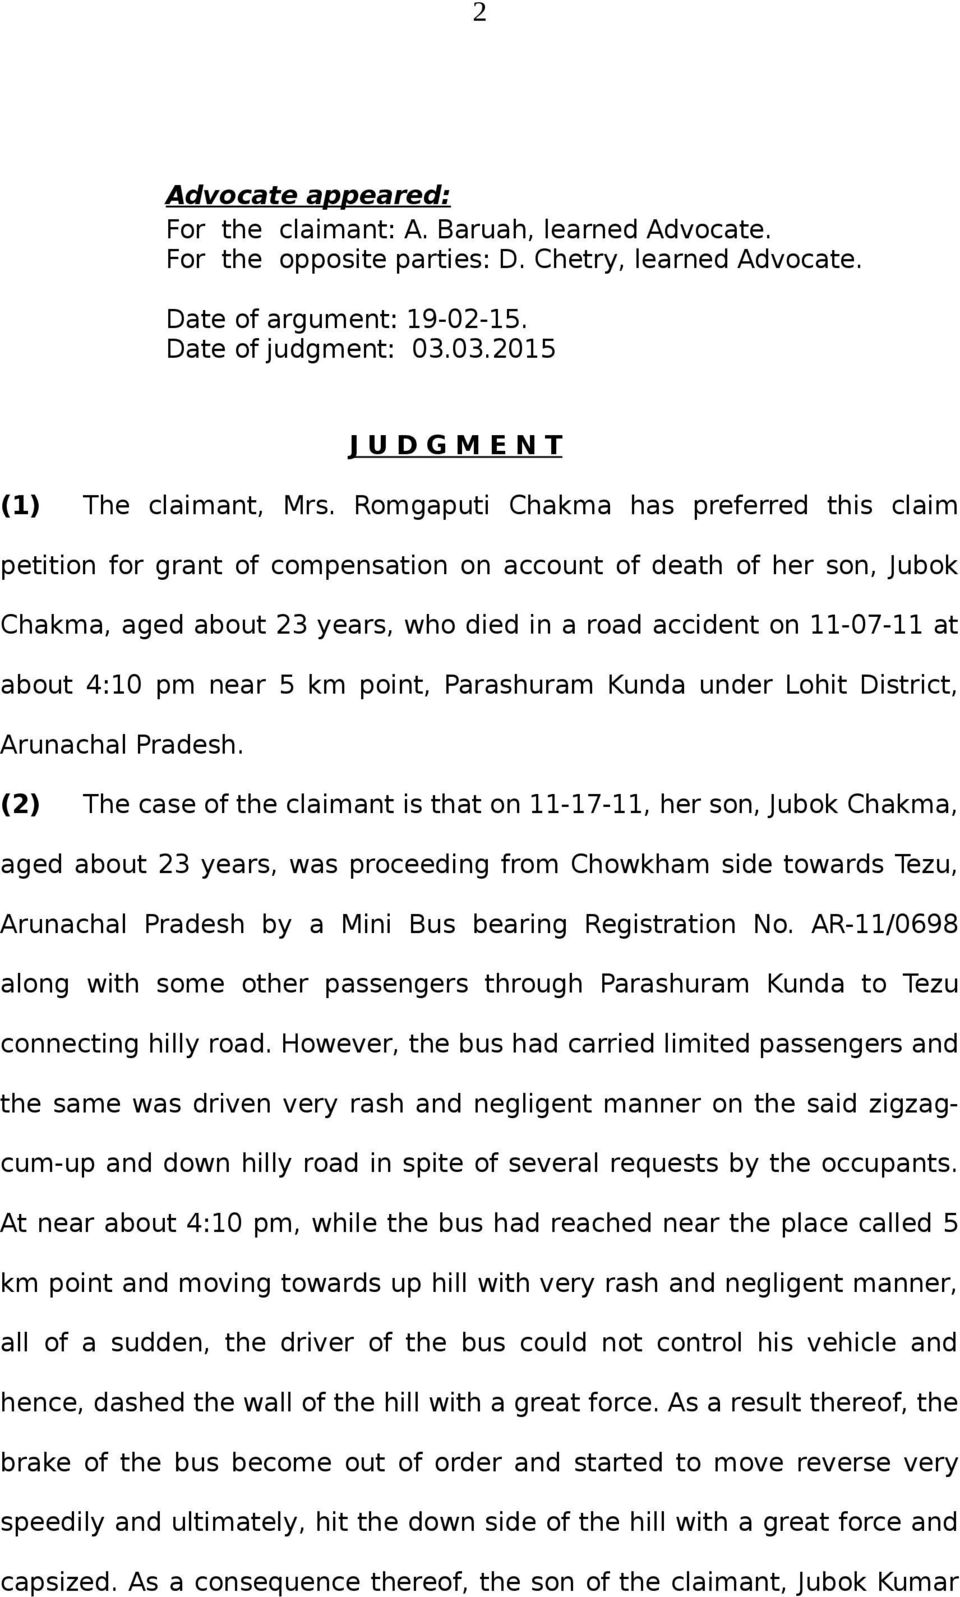 Romgaputi Chakma has preferred this claim petition for grant of compensation on account of death of her son, Jubok Chakma, aged about 23 years, who died in a road accident on 11-07-11 at about 4:10